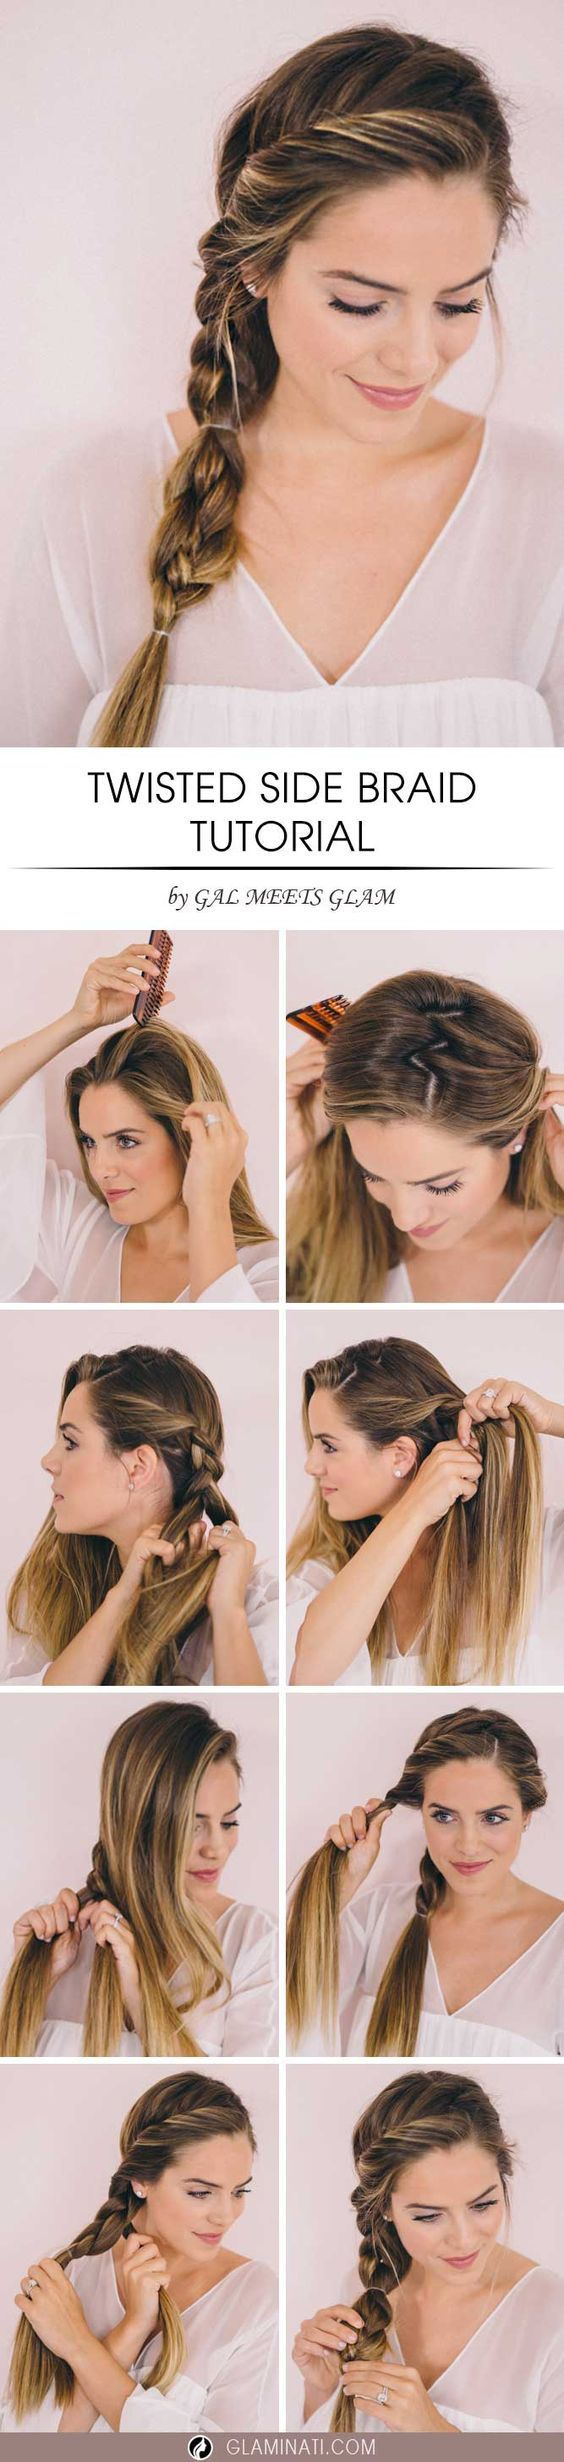 A side braid is trendy right now. It is perfect for everyday wear and some fancy parties. A twisted braid looks terrific with evening gowns and it is more creative than a regular updo.